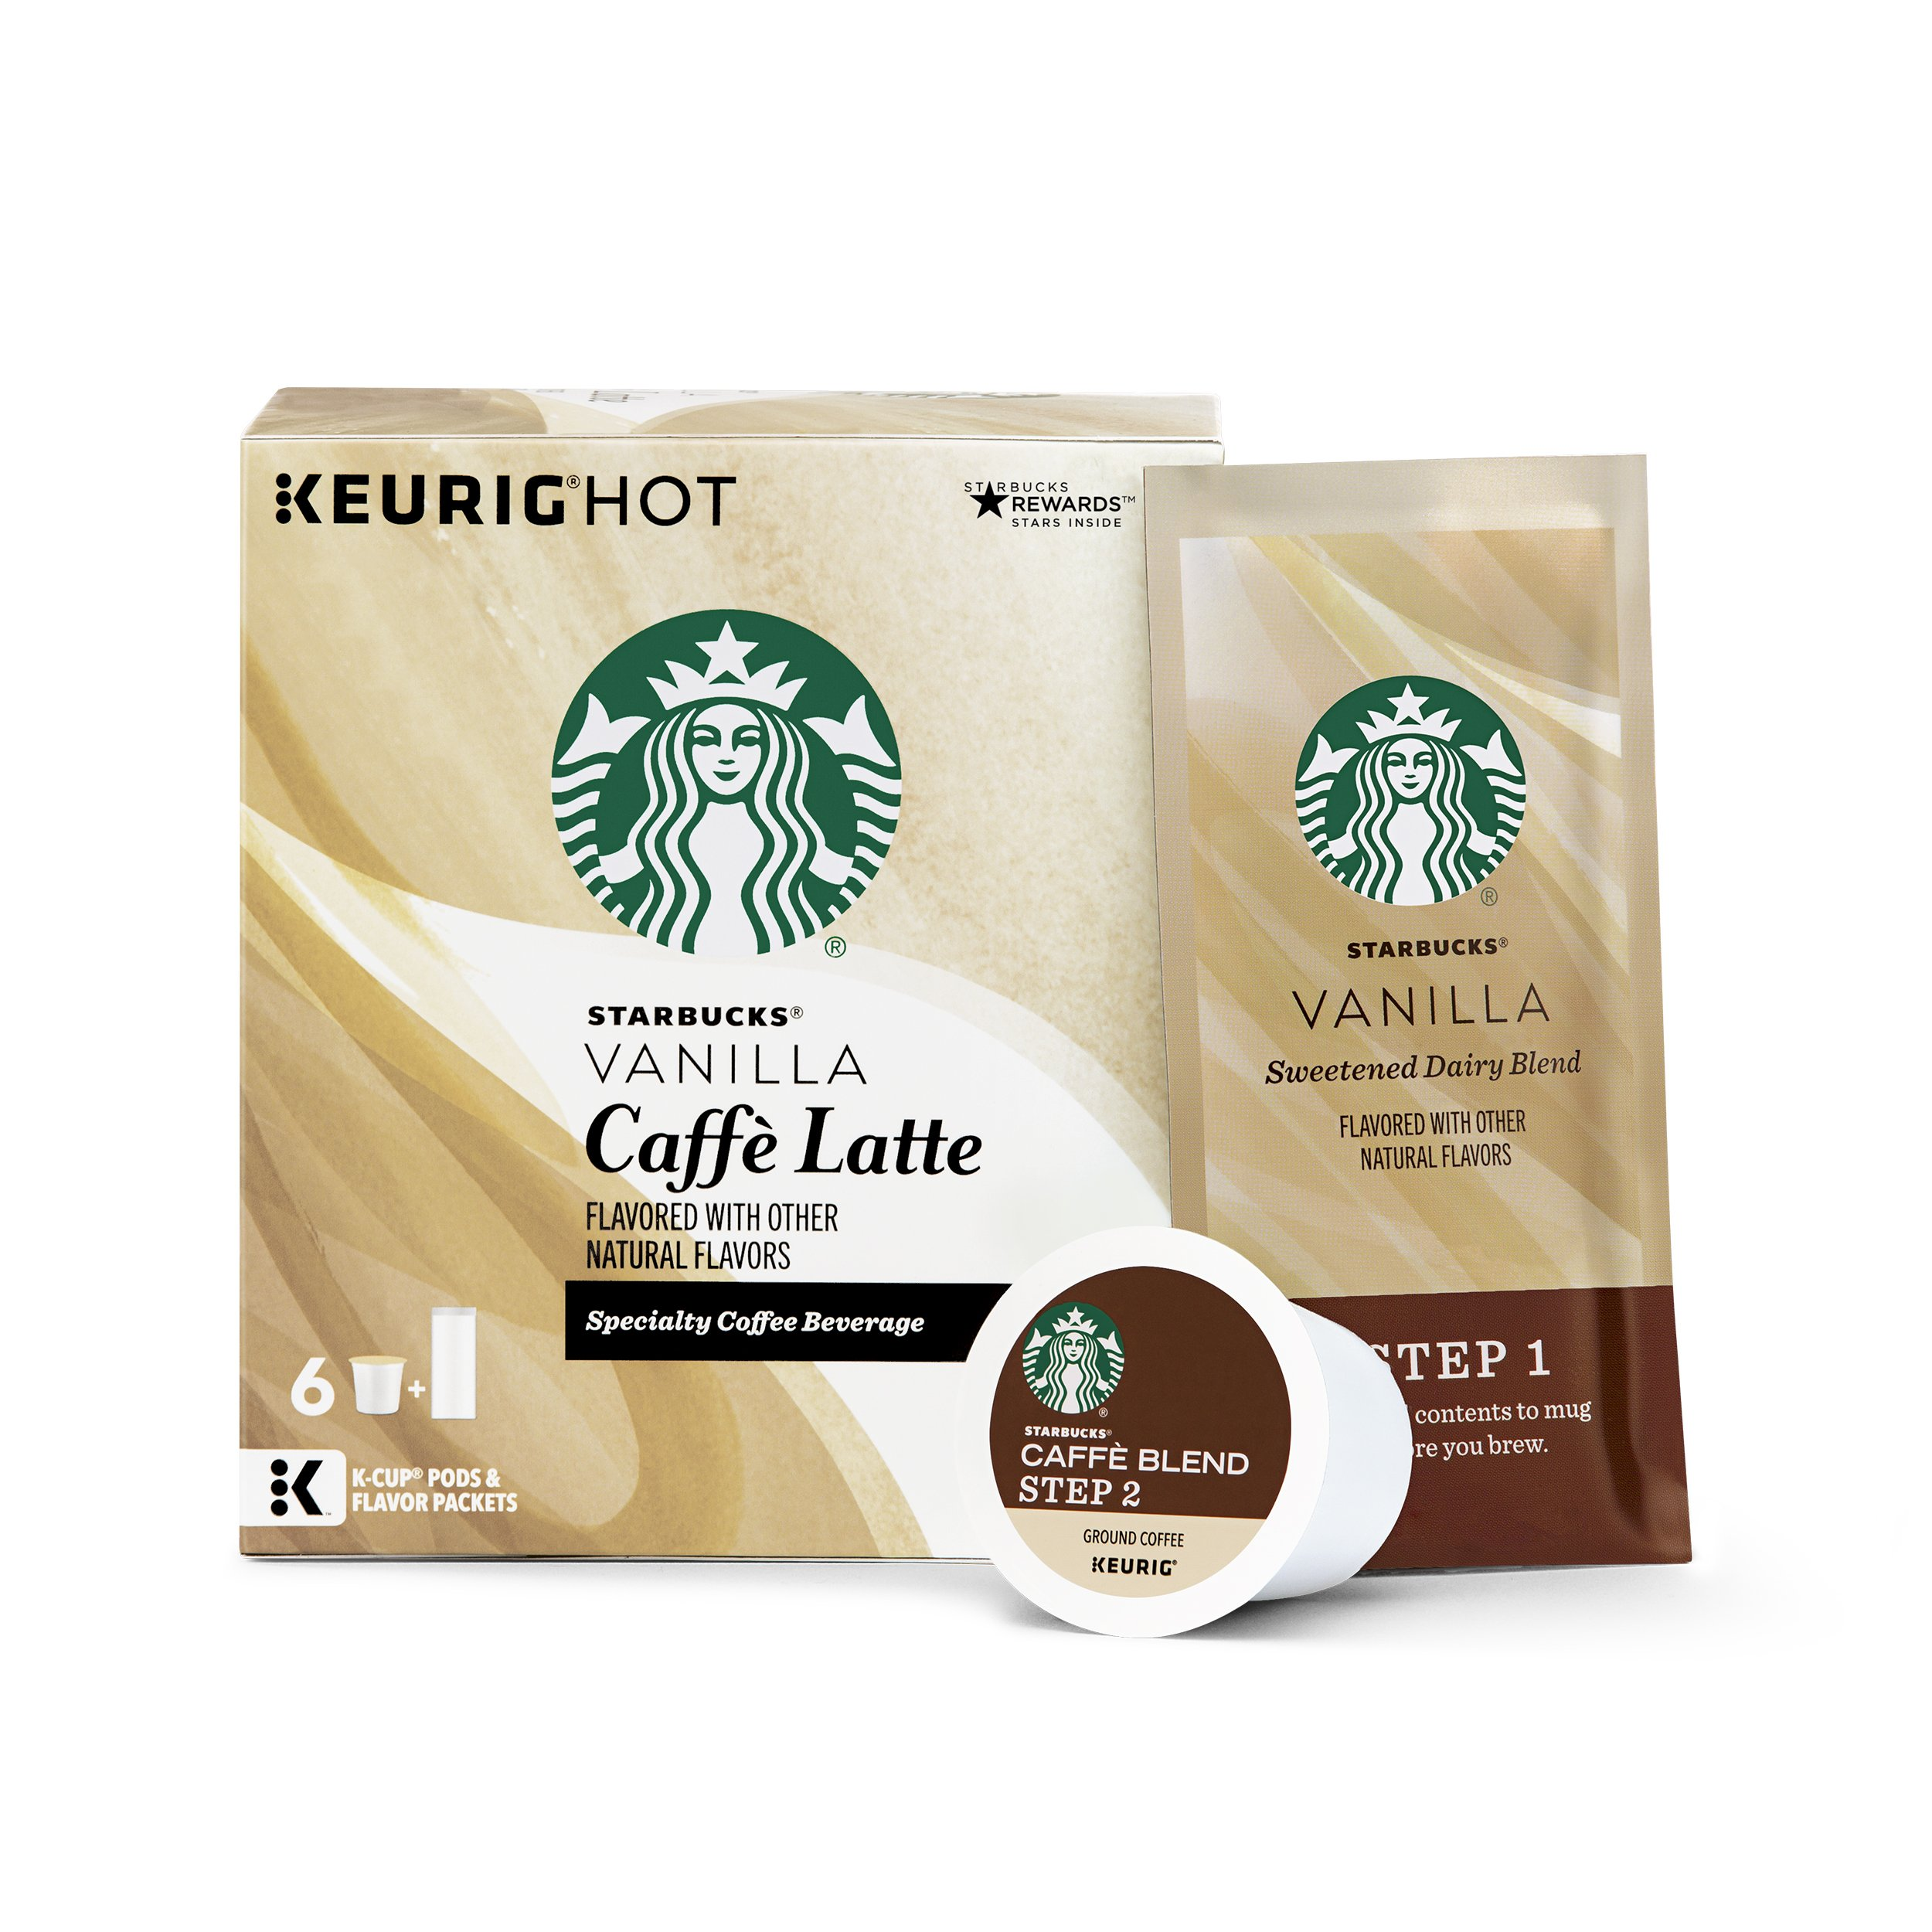 Starbucks Vanilla Flavored Blonde Light Roast Single Cup Coffee for Keurig Brewers, 6 Boxes of 10 (60 Total K-Cup pods)